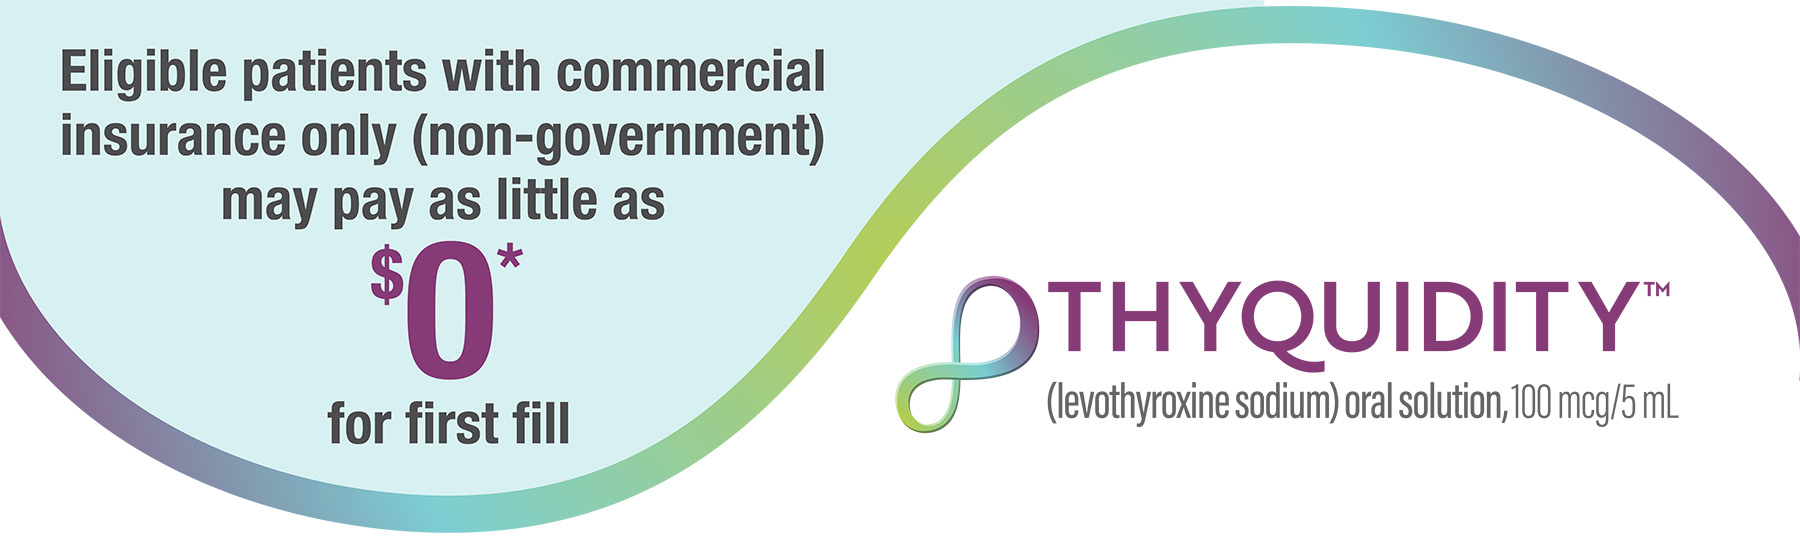 Thyquidity: Eligible patients may pay as little as $0 for first fill*